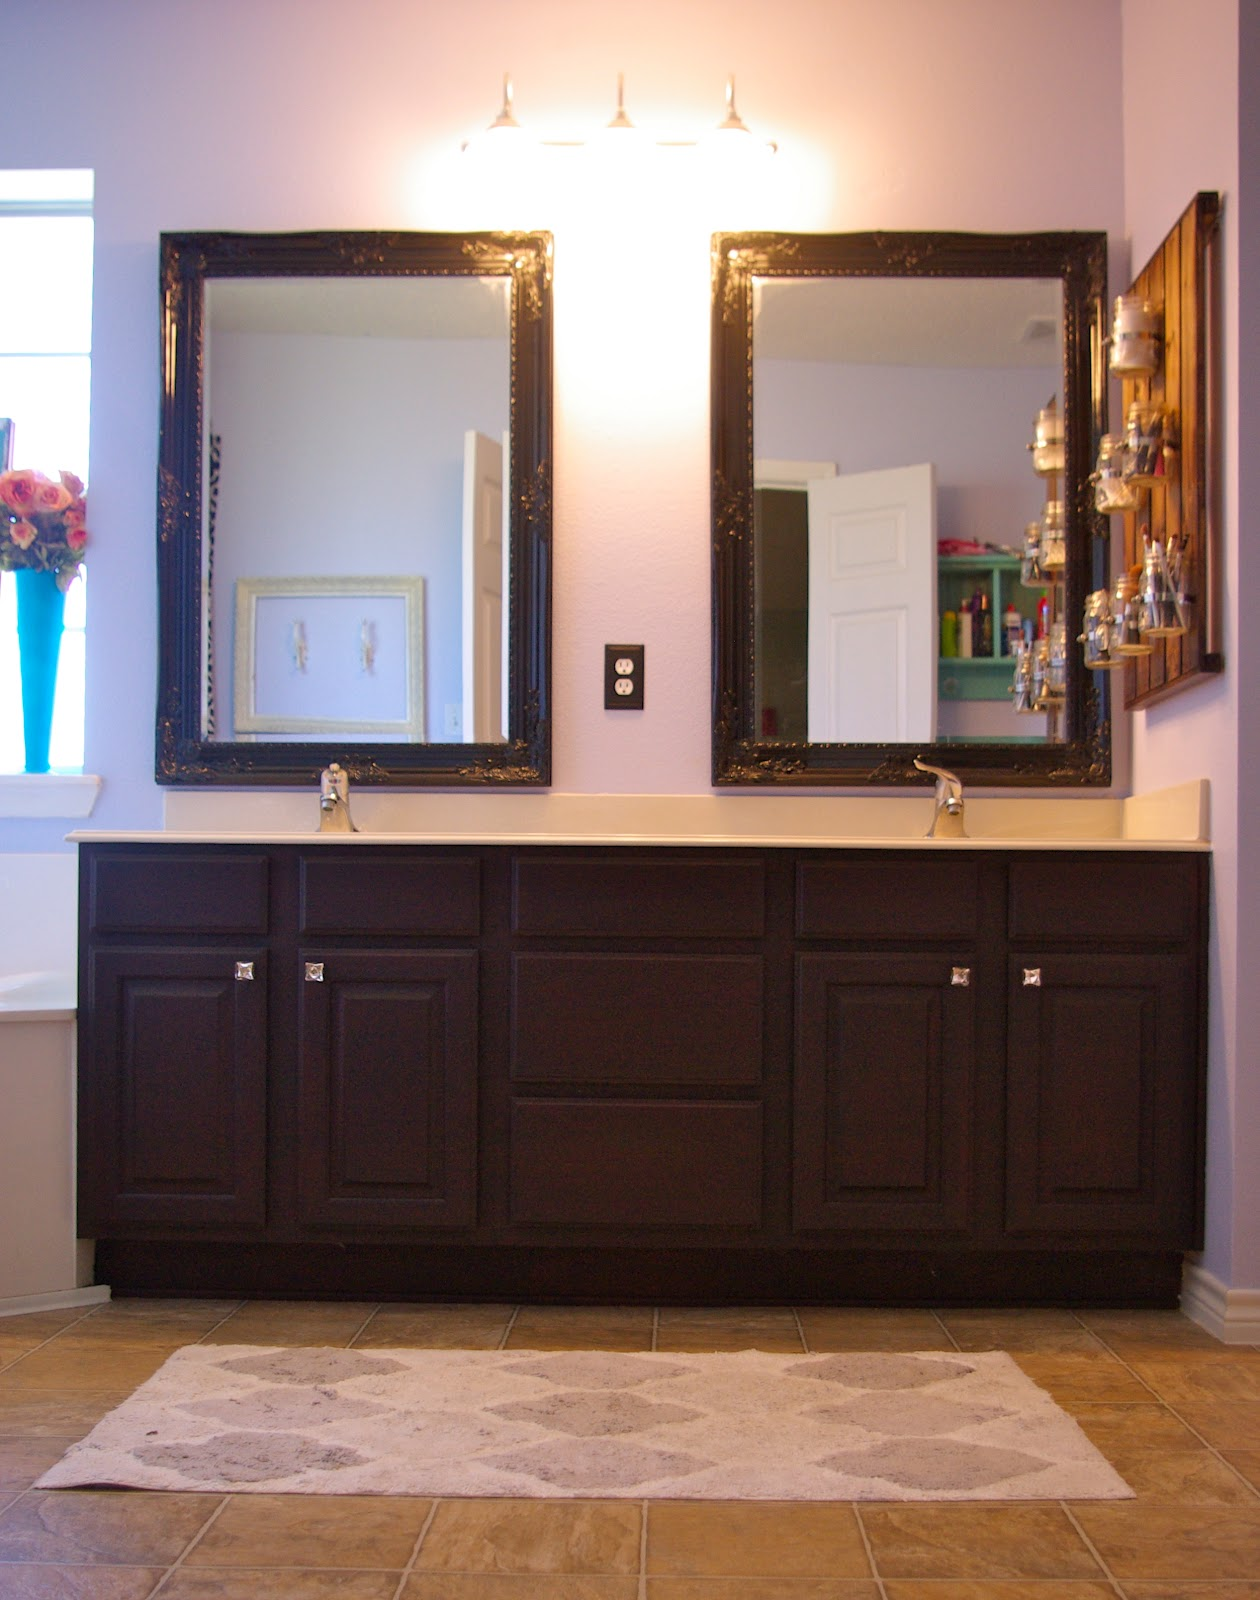 Refinished Bathroom Cabinets